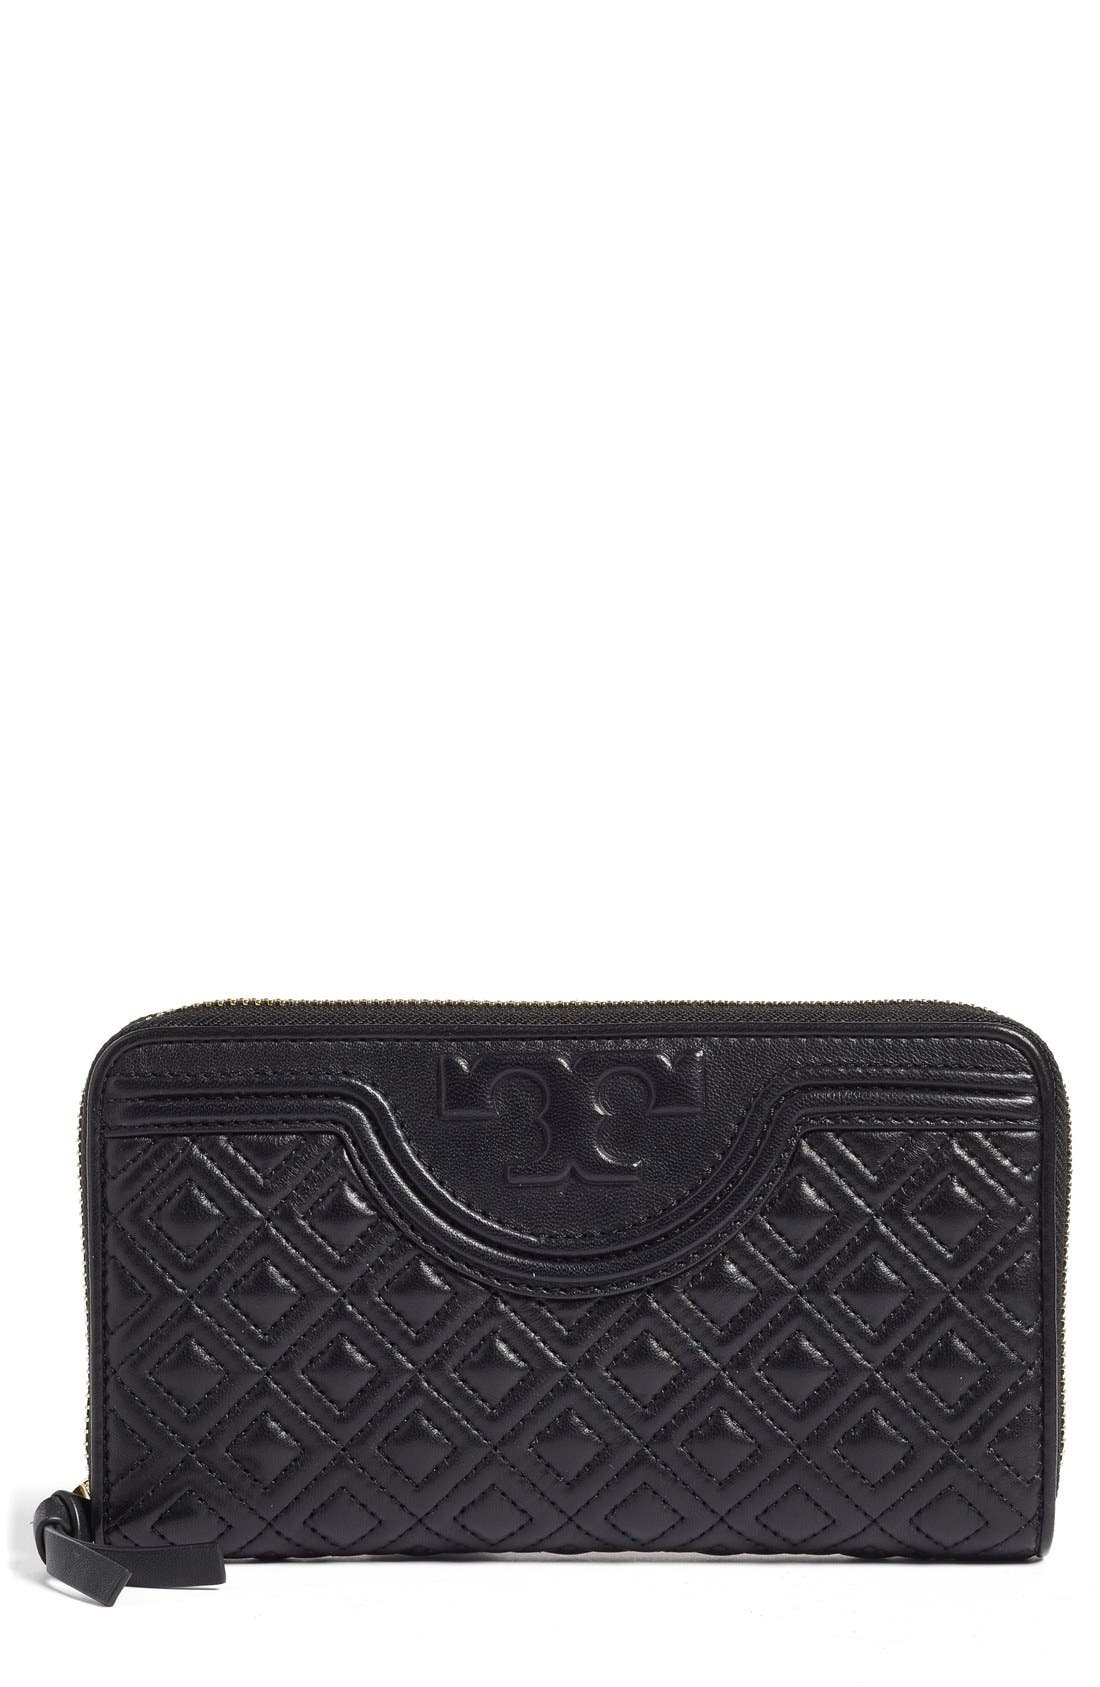 Main Image - Tory Burch 'Fleming' Quilted Lambskin Leather Continental Wallet